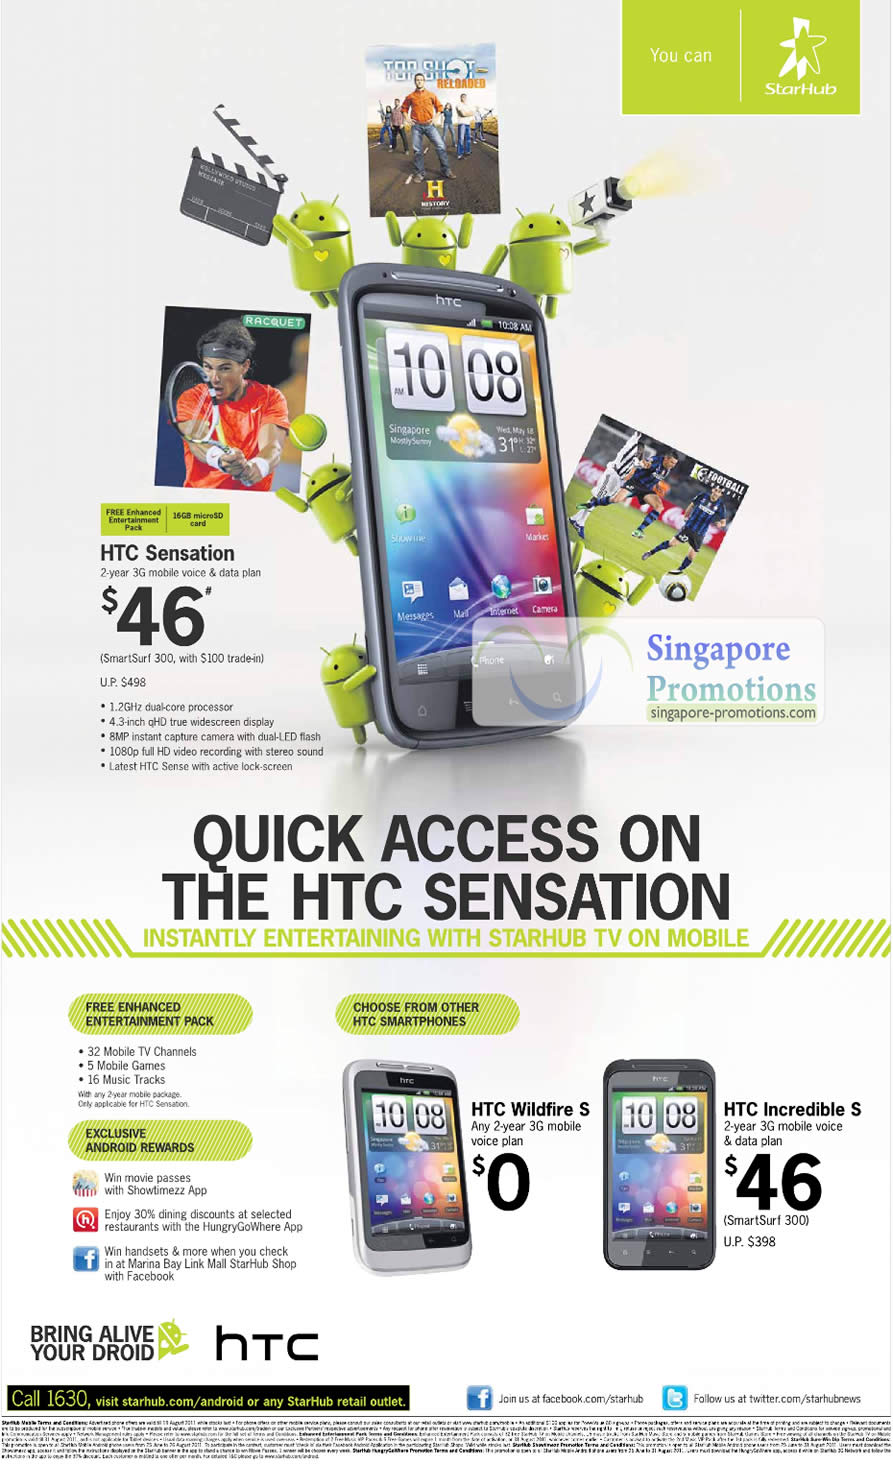 HTC Sensation, HTC Wildfire S, HTC Incredible S